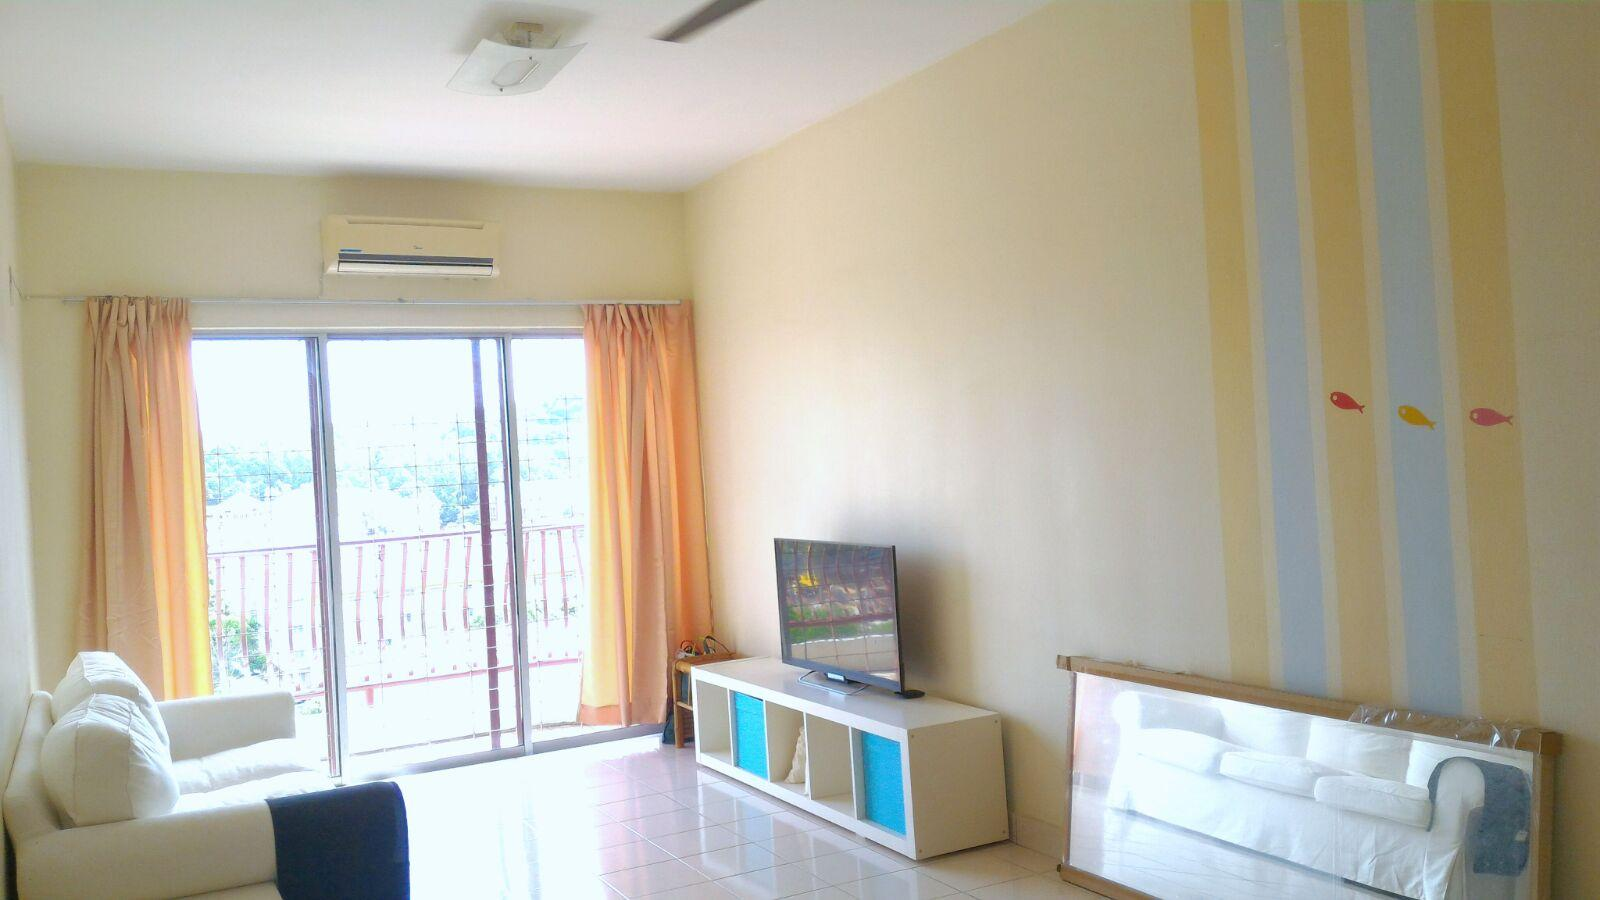 Casa Puteri Condo for sale, Middle Floor, Good Condition, Bdr Puteri